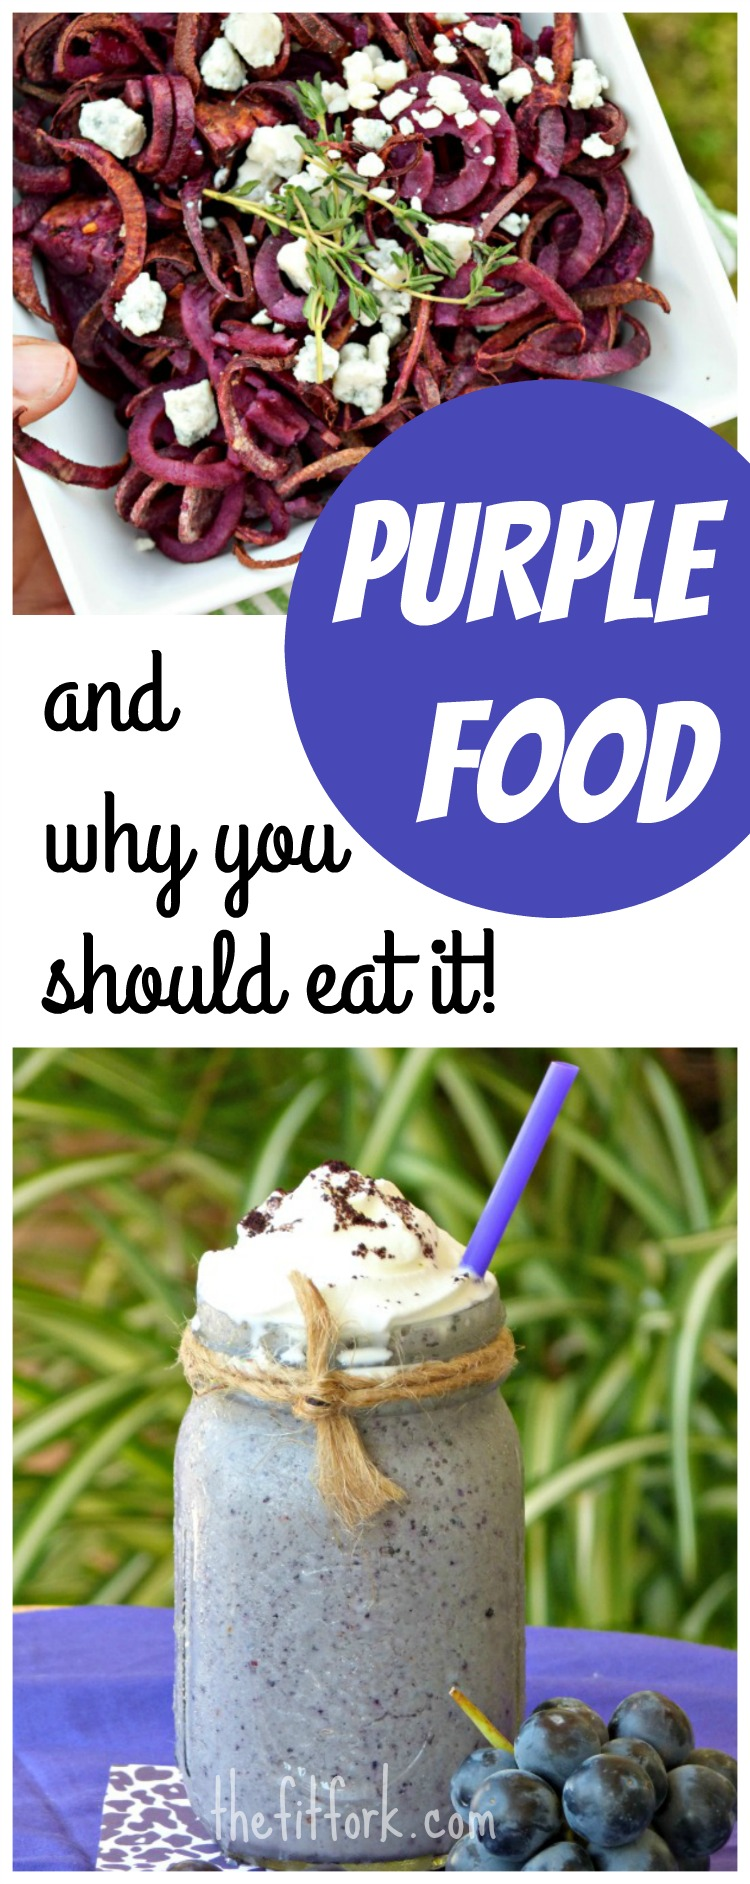 Purple Food and Why You Should Eat It -- all the healhty benefits!